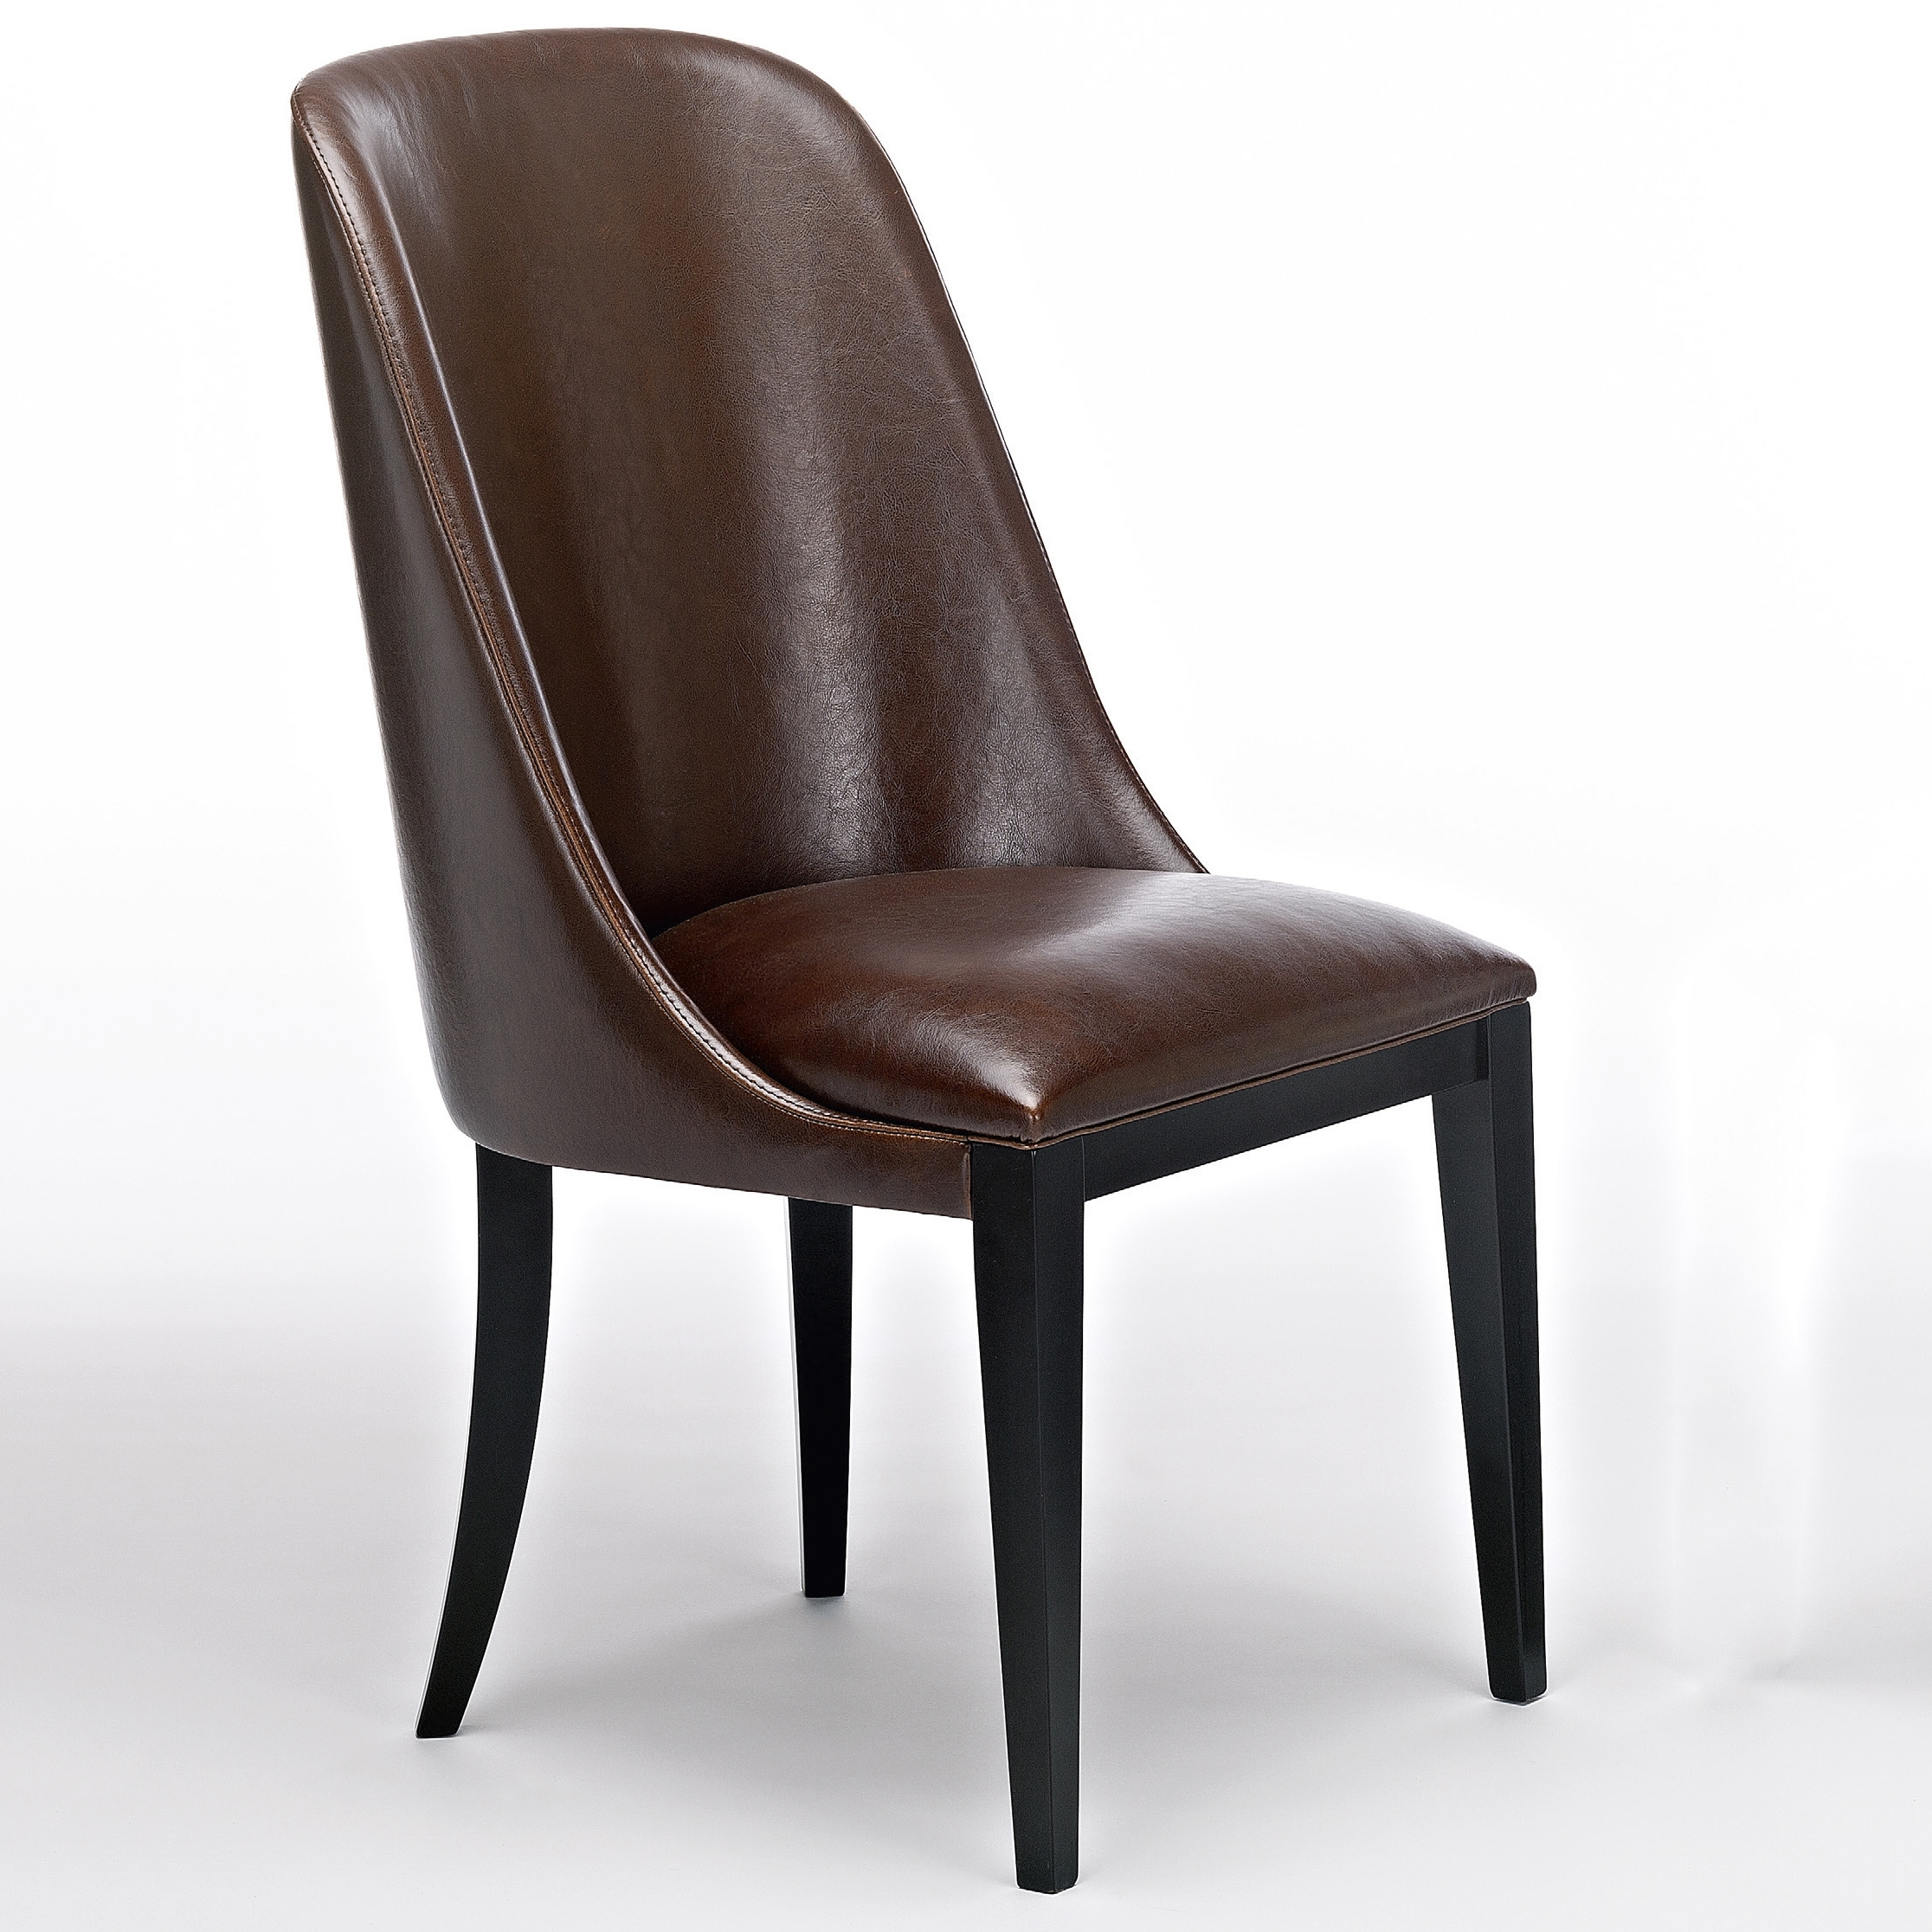 Flamingo Dark Brown Leather Dining Chairs – Robson Furniture With Regard To Well Known Dark Brown Leather Dining Chairs (View 6 of 25)